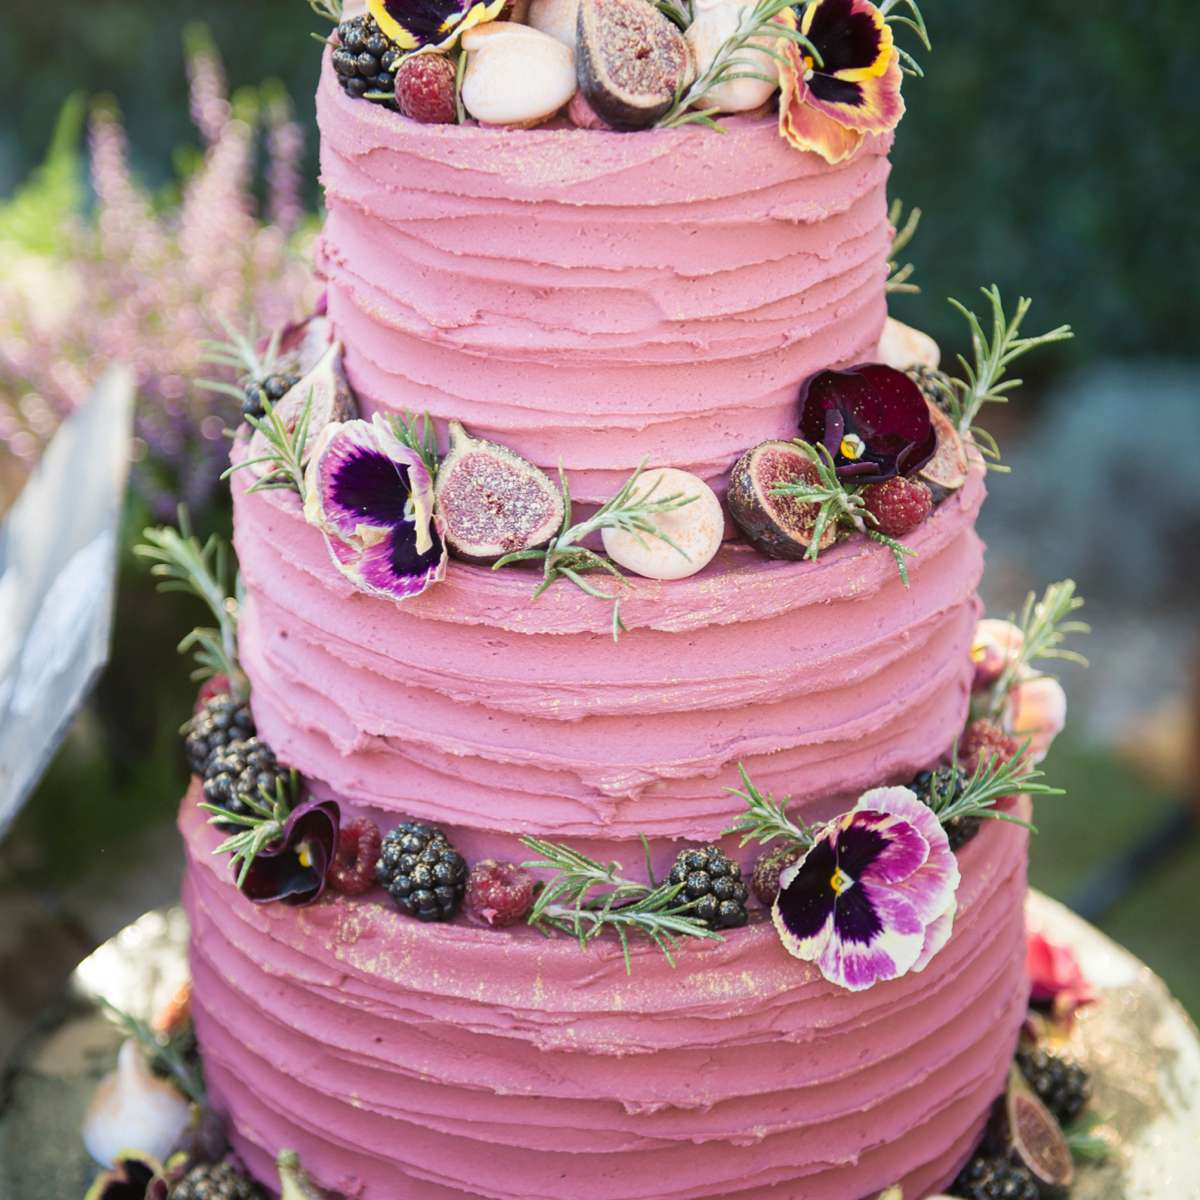 A pink wedding cake with berries and figs